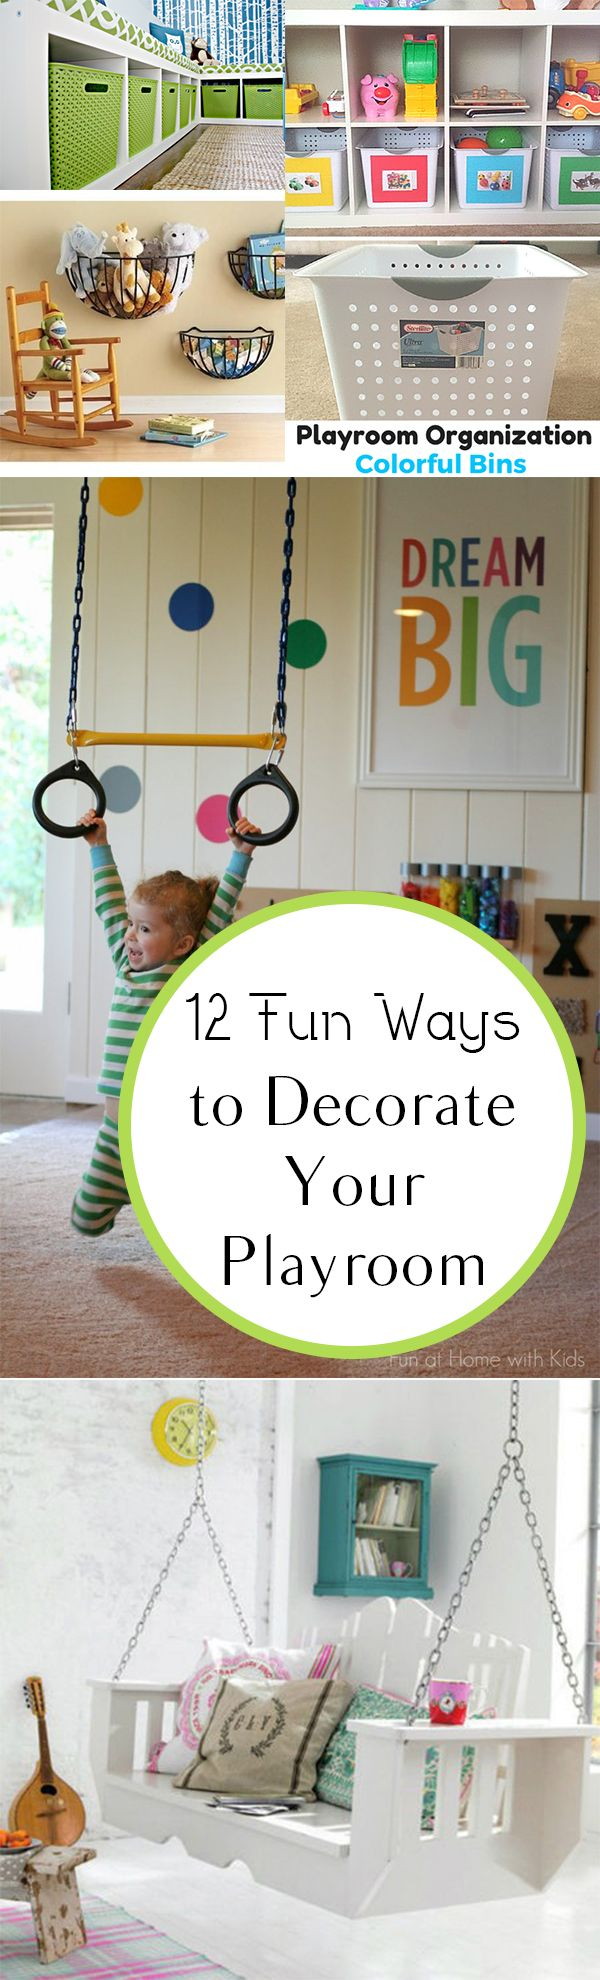 12 Fun Ways to Decorate Your Playroom   Playrooms and Decorating